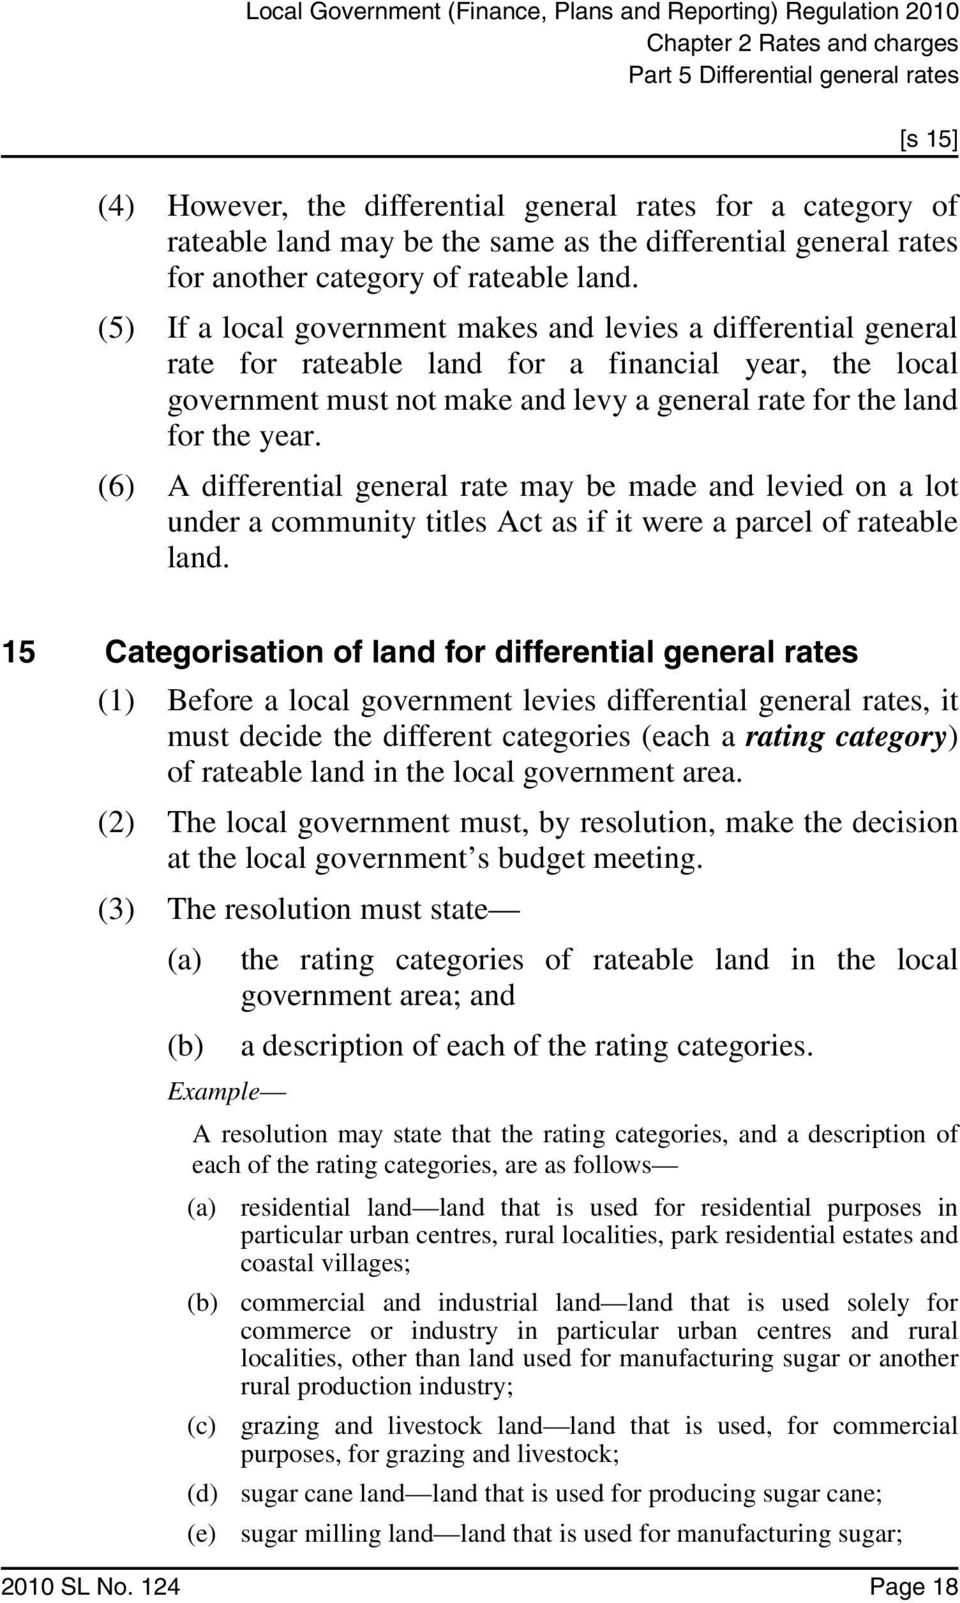 (5) If a local government makes and levies a differential general rate for rateable land for a financial year, the local government must not make and levy a general rate for the land for the year.